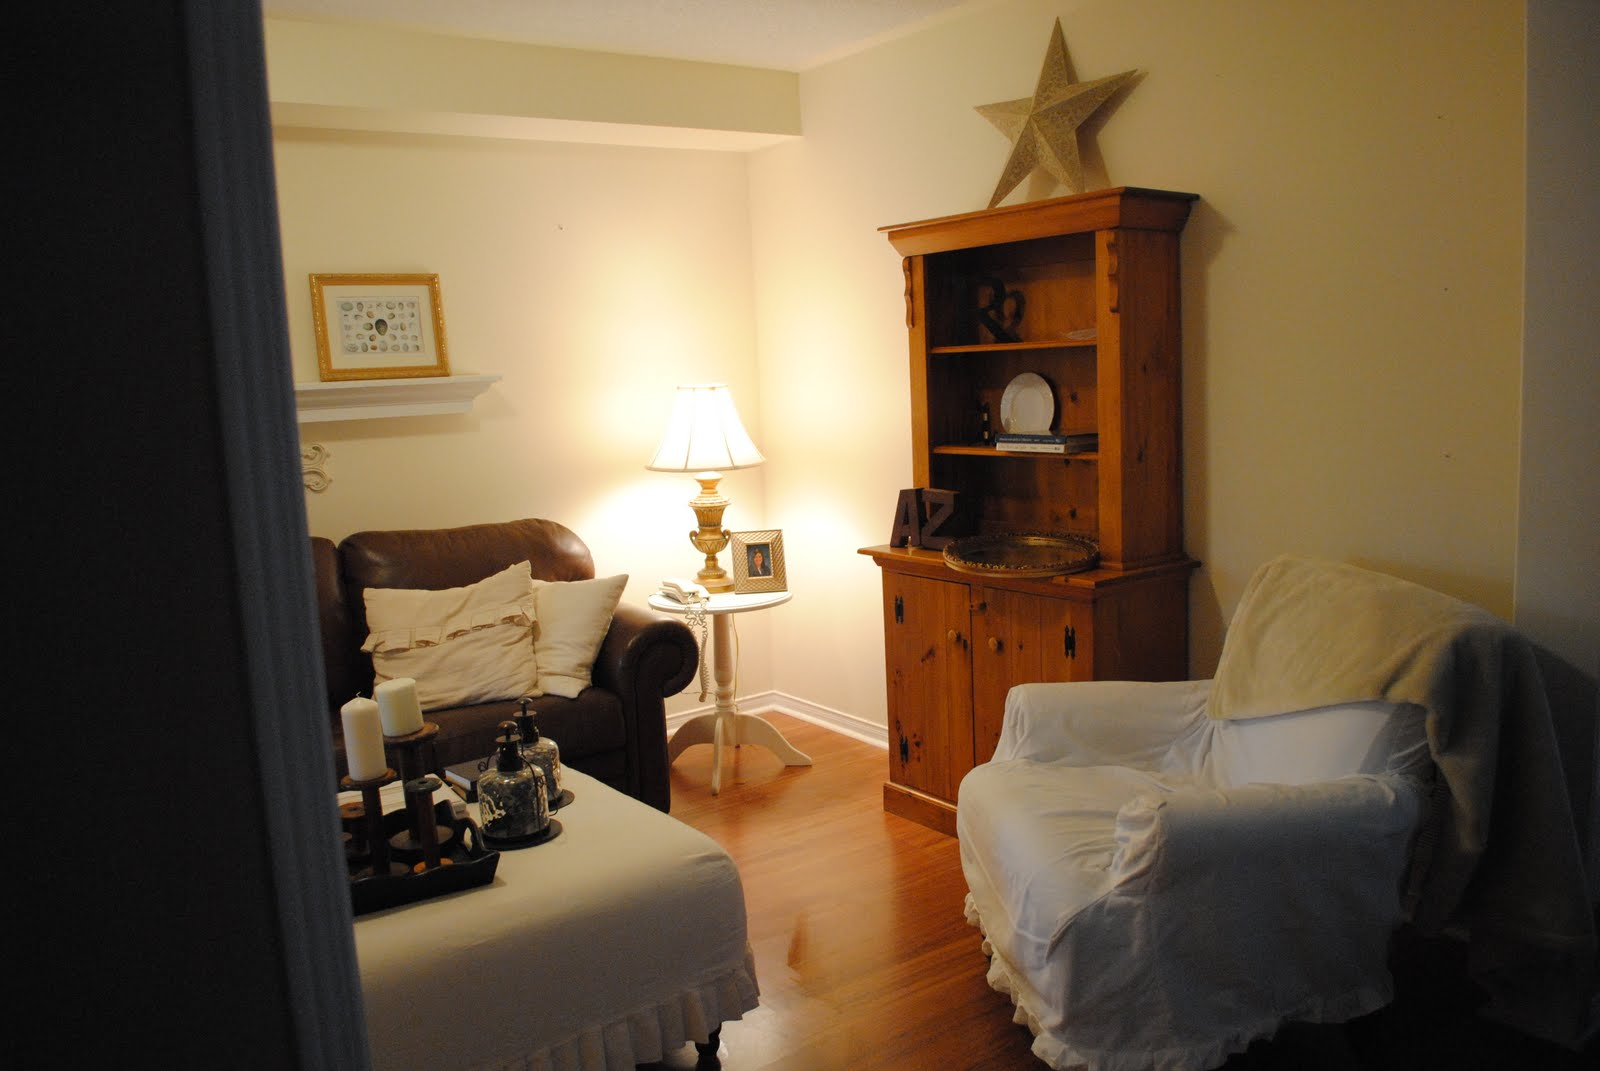 Mennonite Bedroom Furniture Rustic Maple Poppies At Play Home Tour